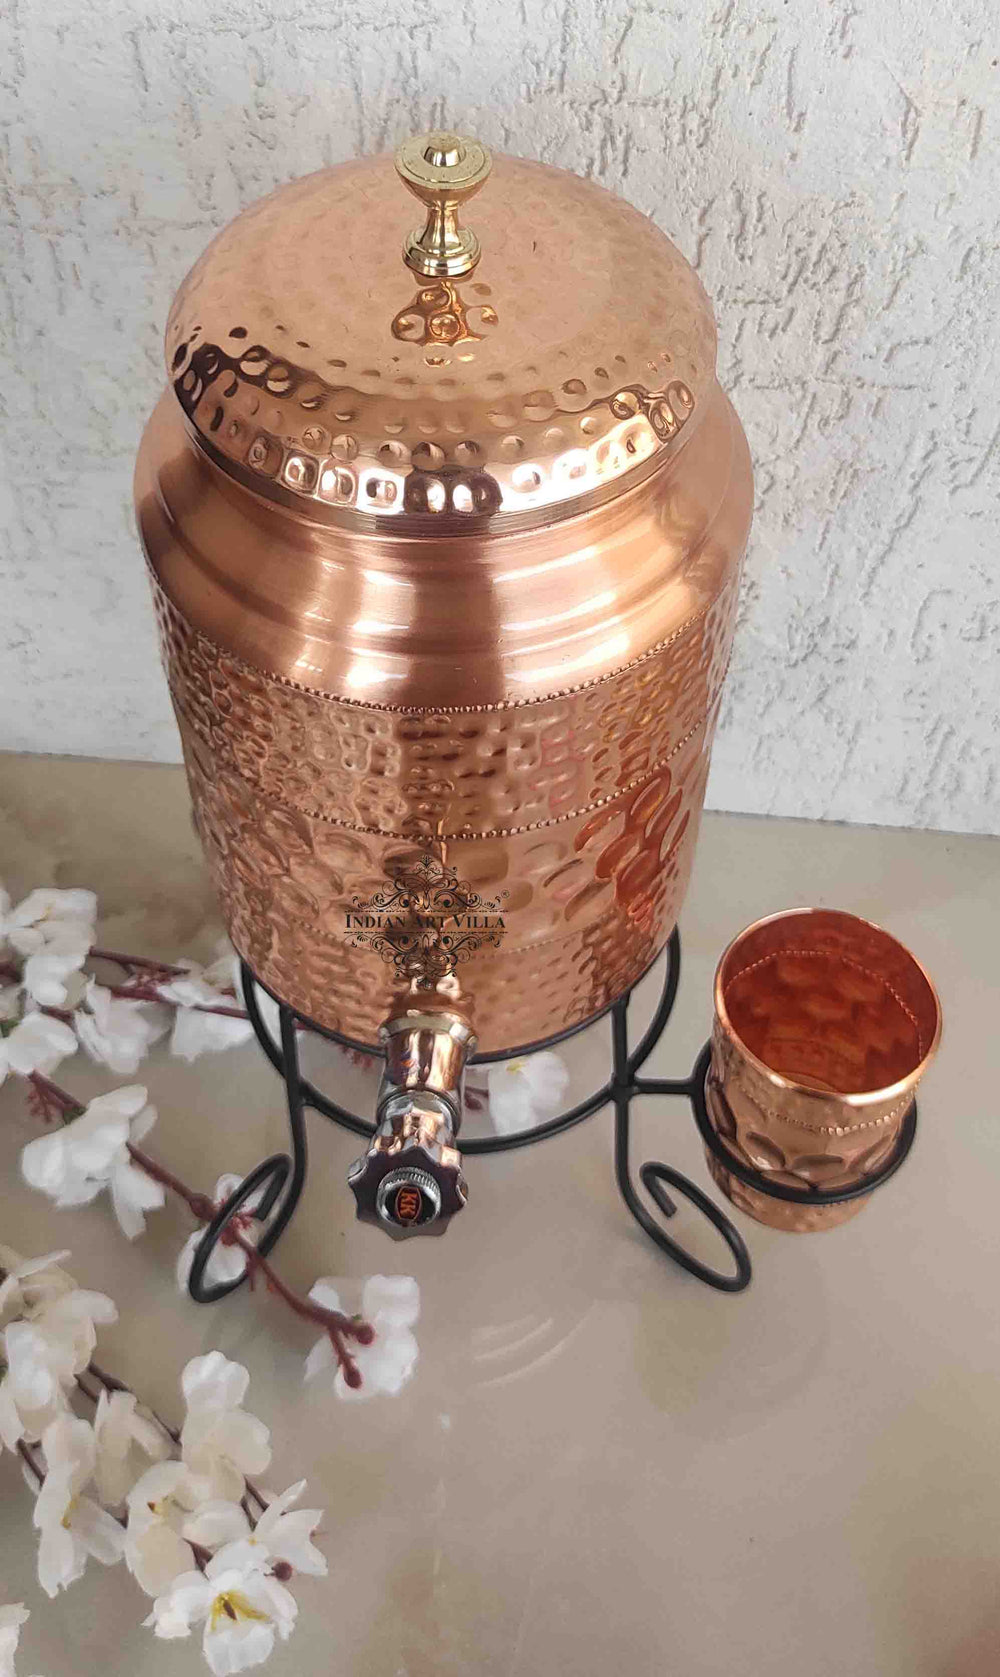 It is a healthy habit for all to drink water stored in copper water especially in the morning when you wake up.